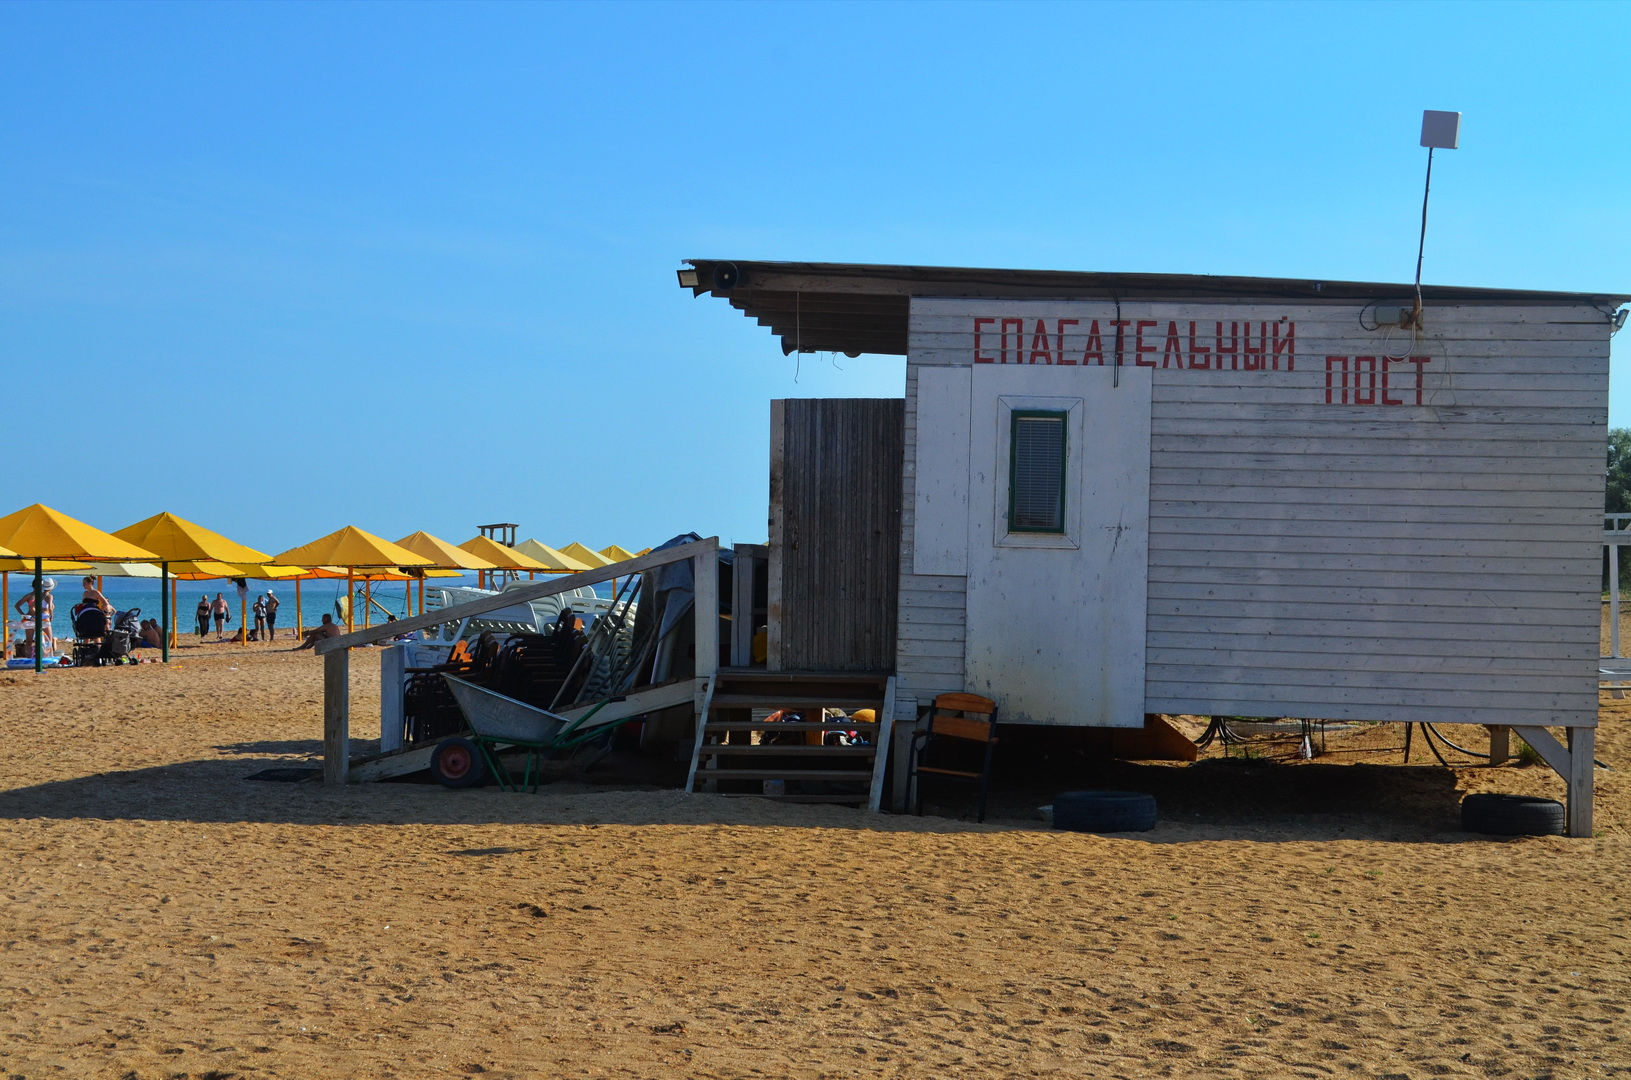 kerch city beach 6